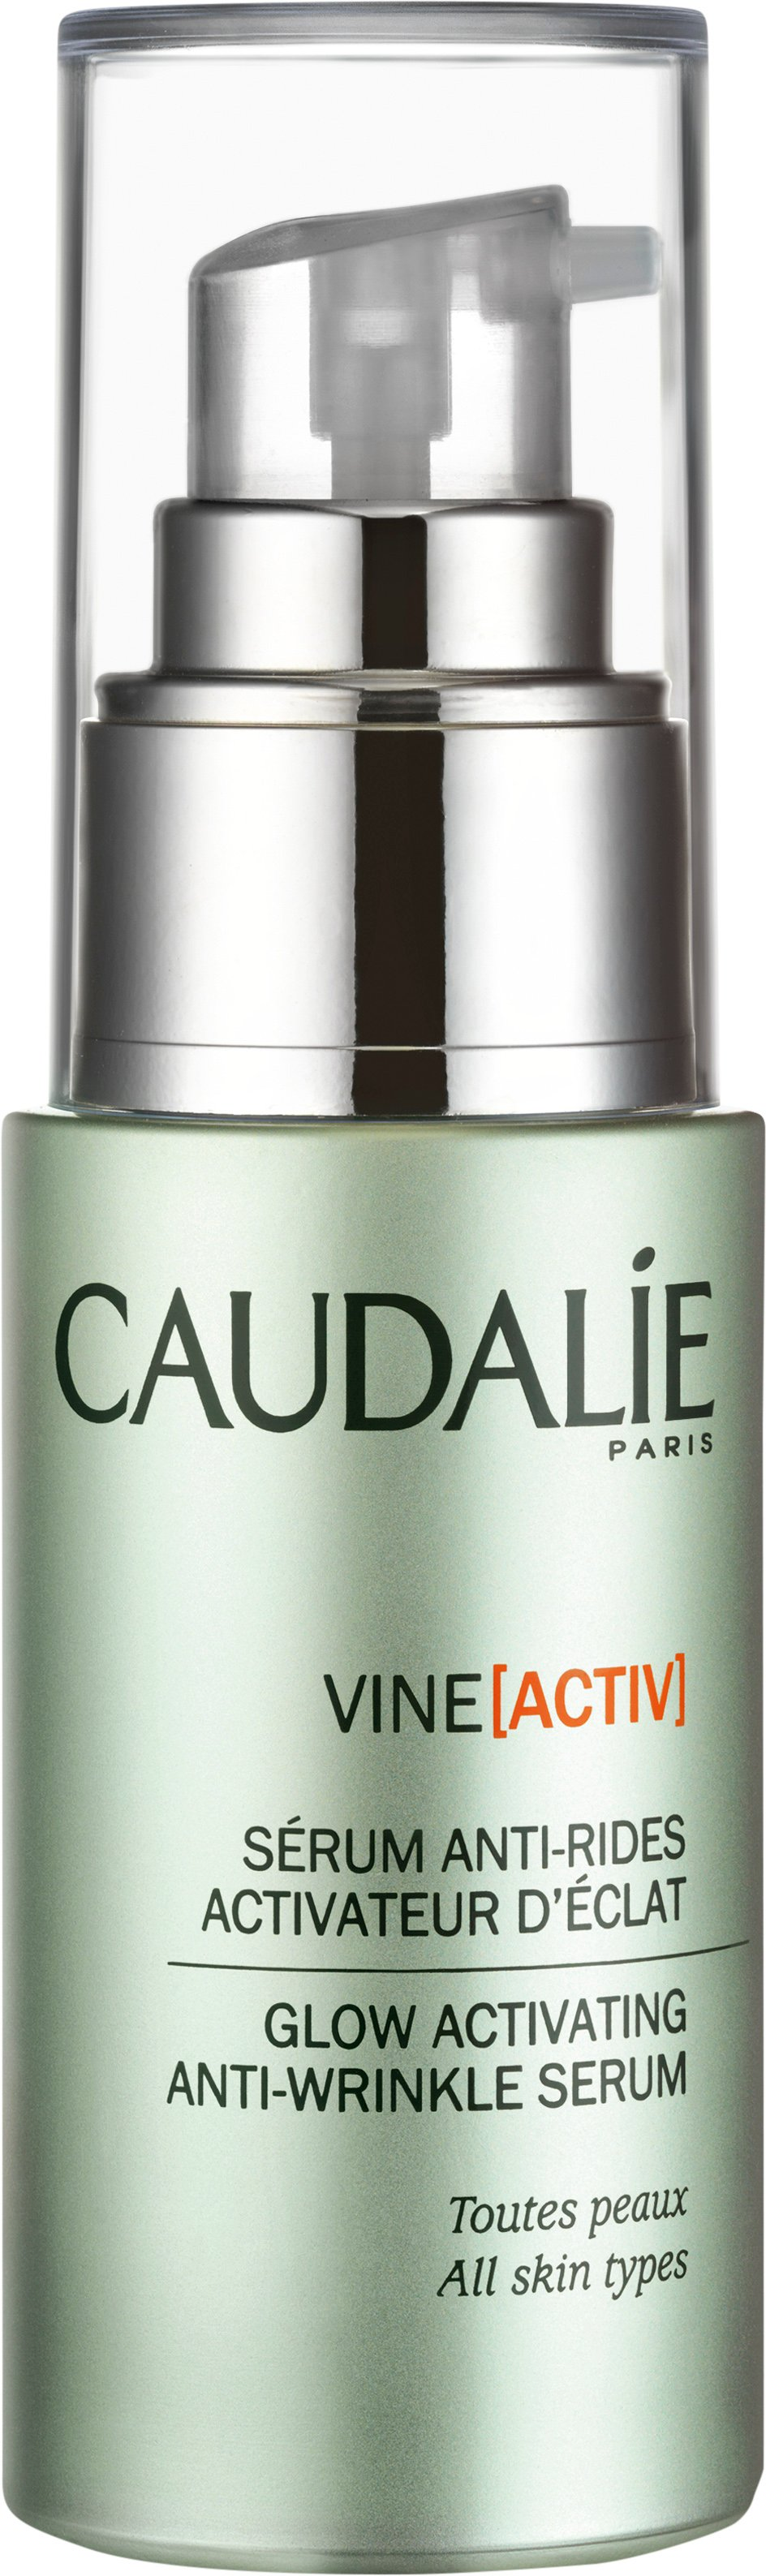 Caudalie - VineActiv Glow Activating Anti-wrinkle Serum 30 ml